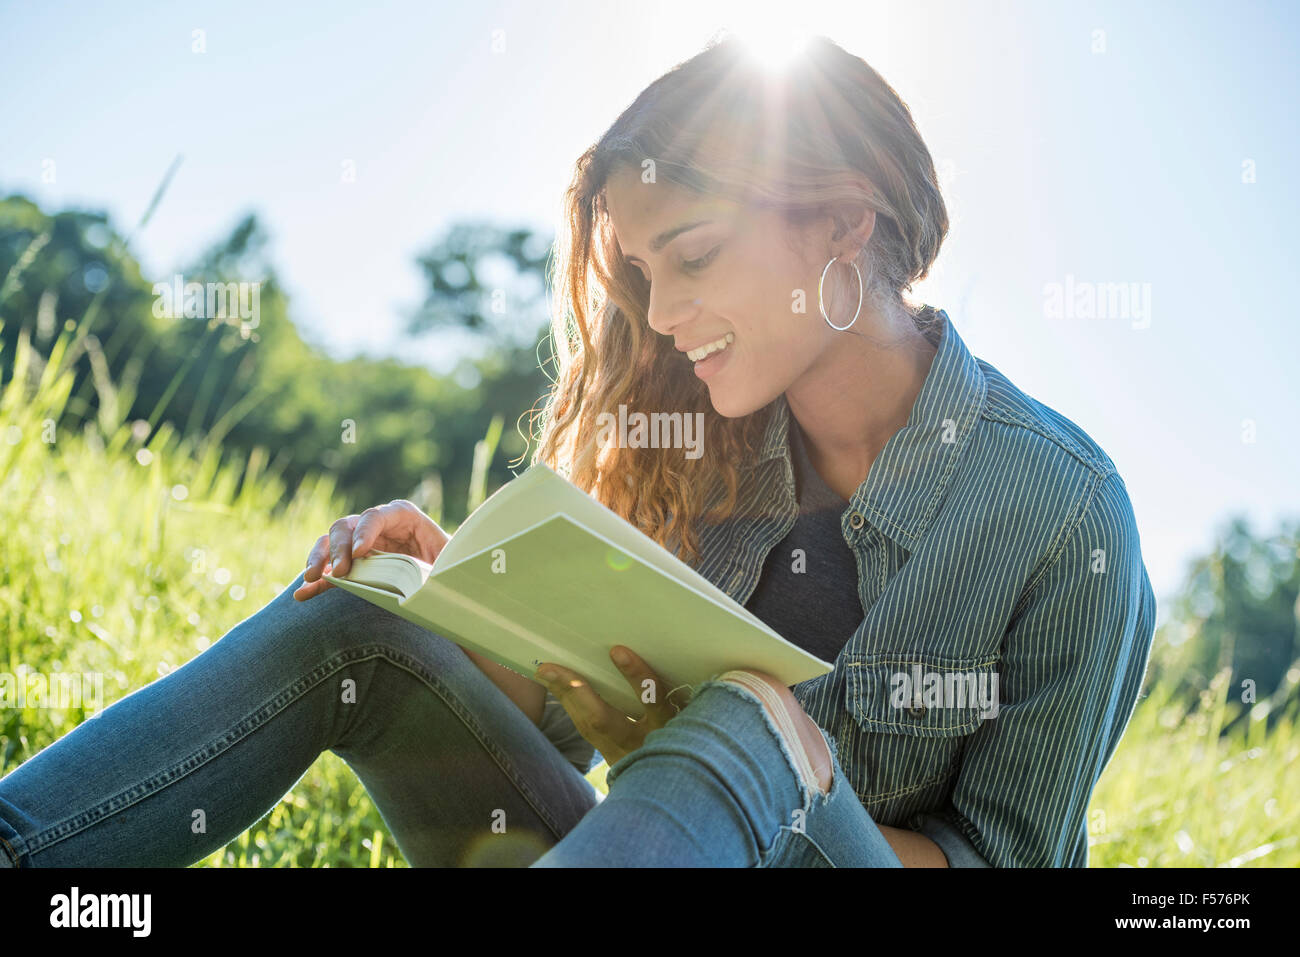 A young woman sitting in the sun reading a book - Stock Image